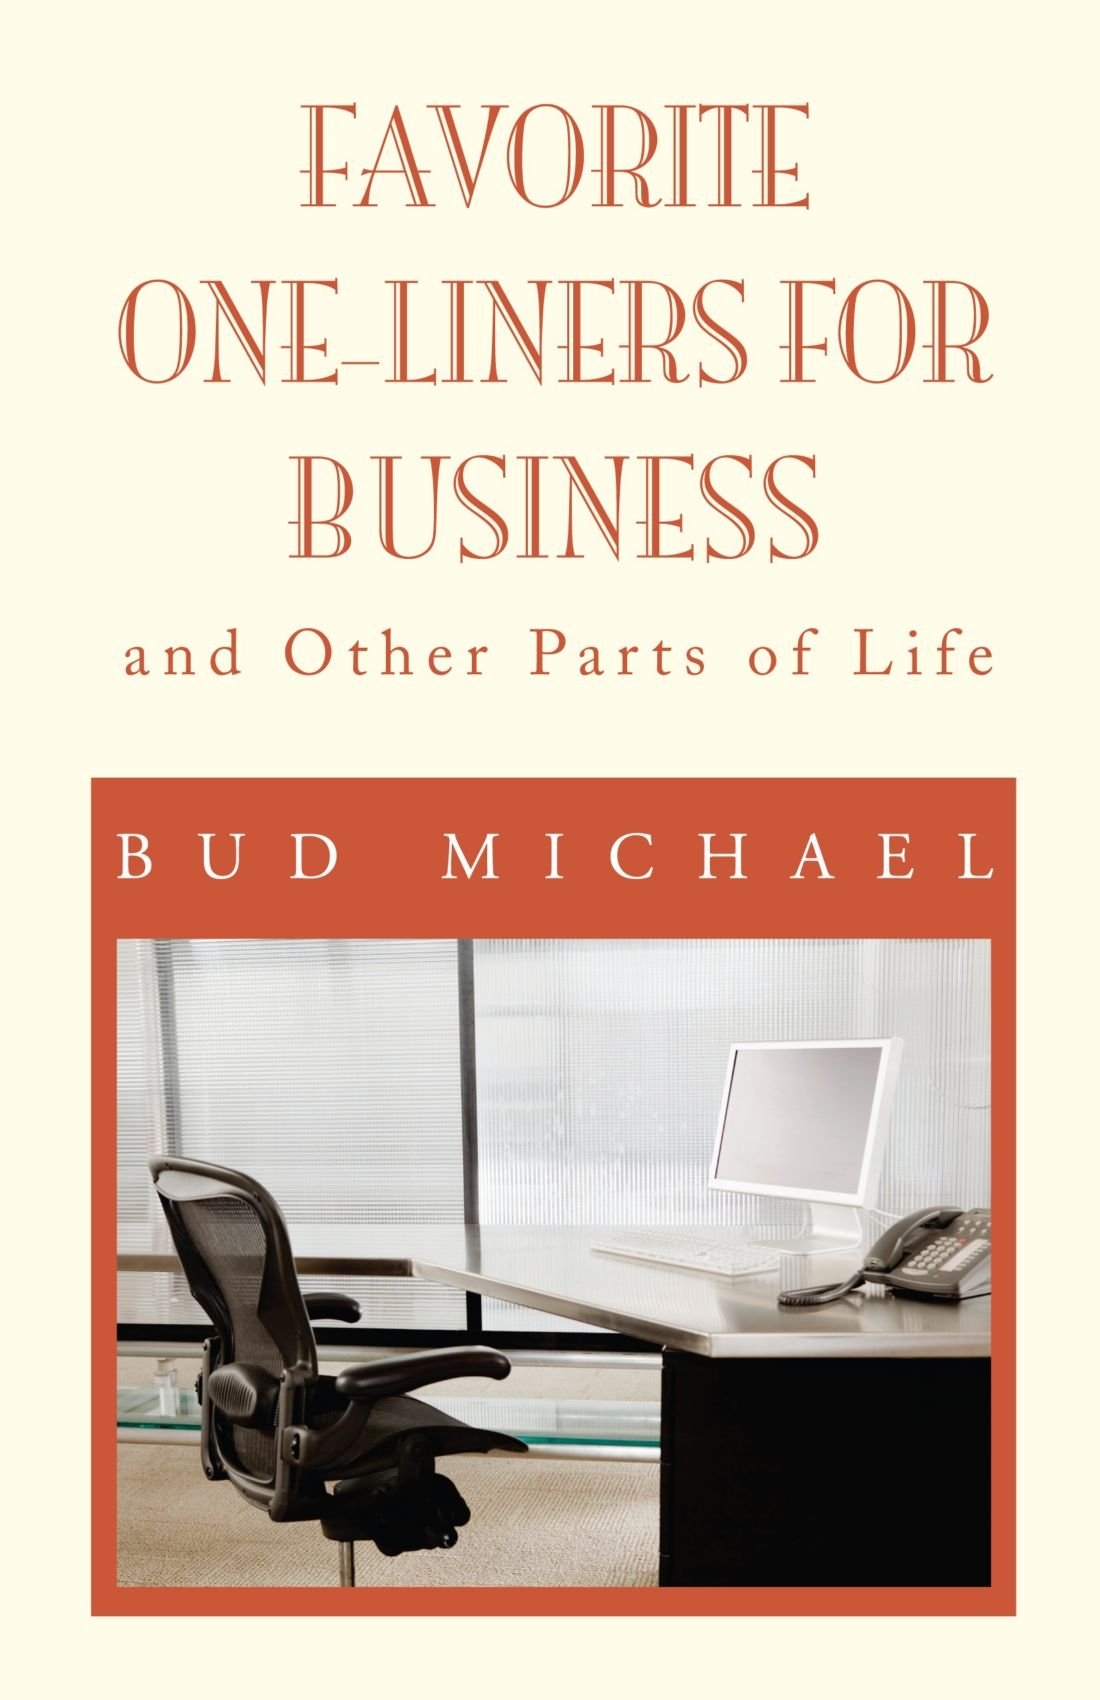 FAVORITE ONE LINERS FOR BUSINESS: and Other Parts of Life